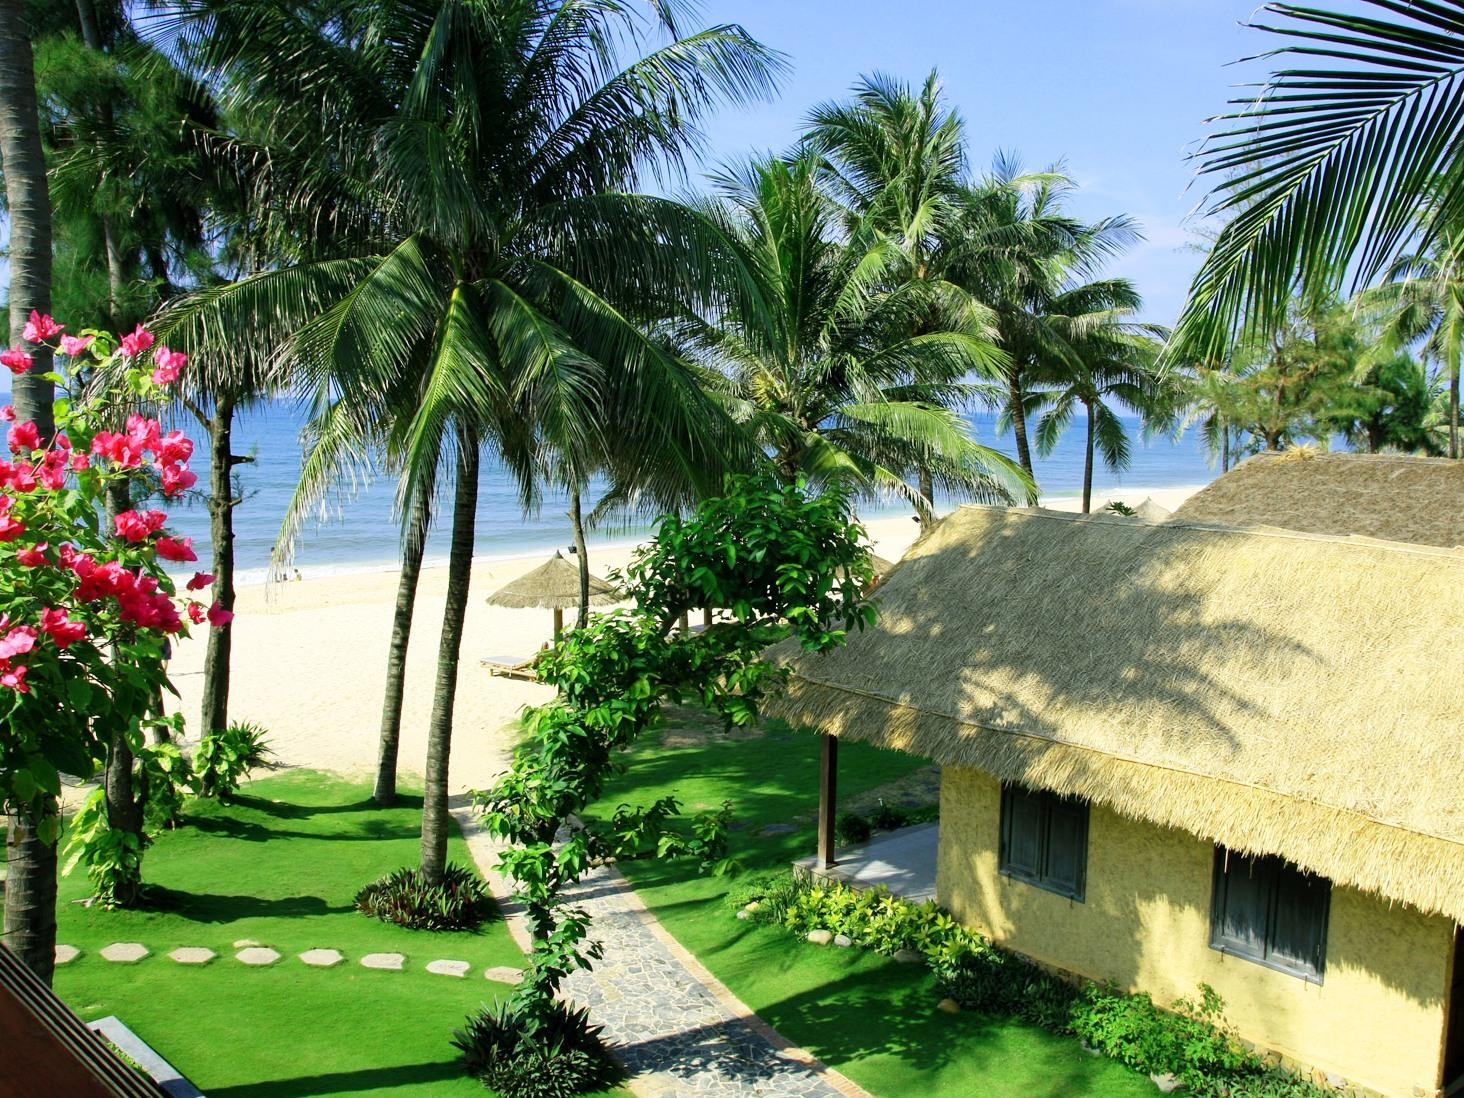 Bamboo Village Beach Resort Mui Ne Phan Thiet Vietnam